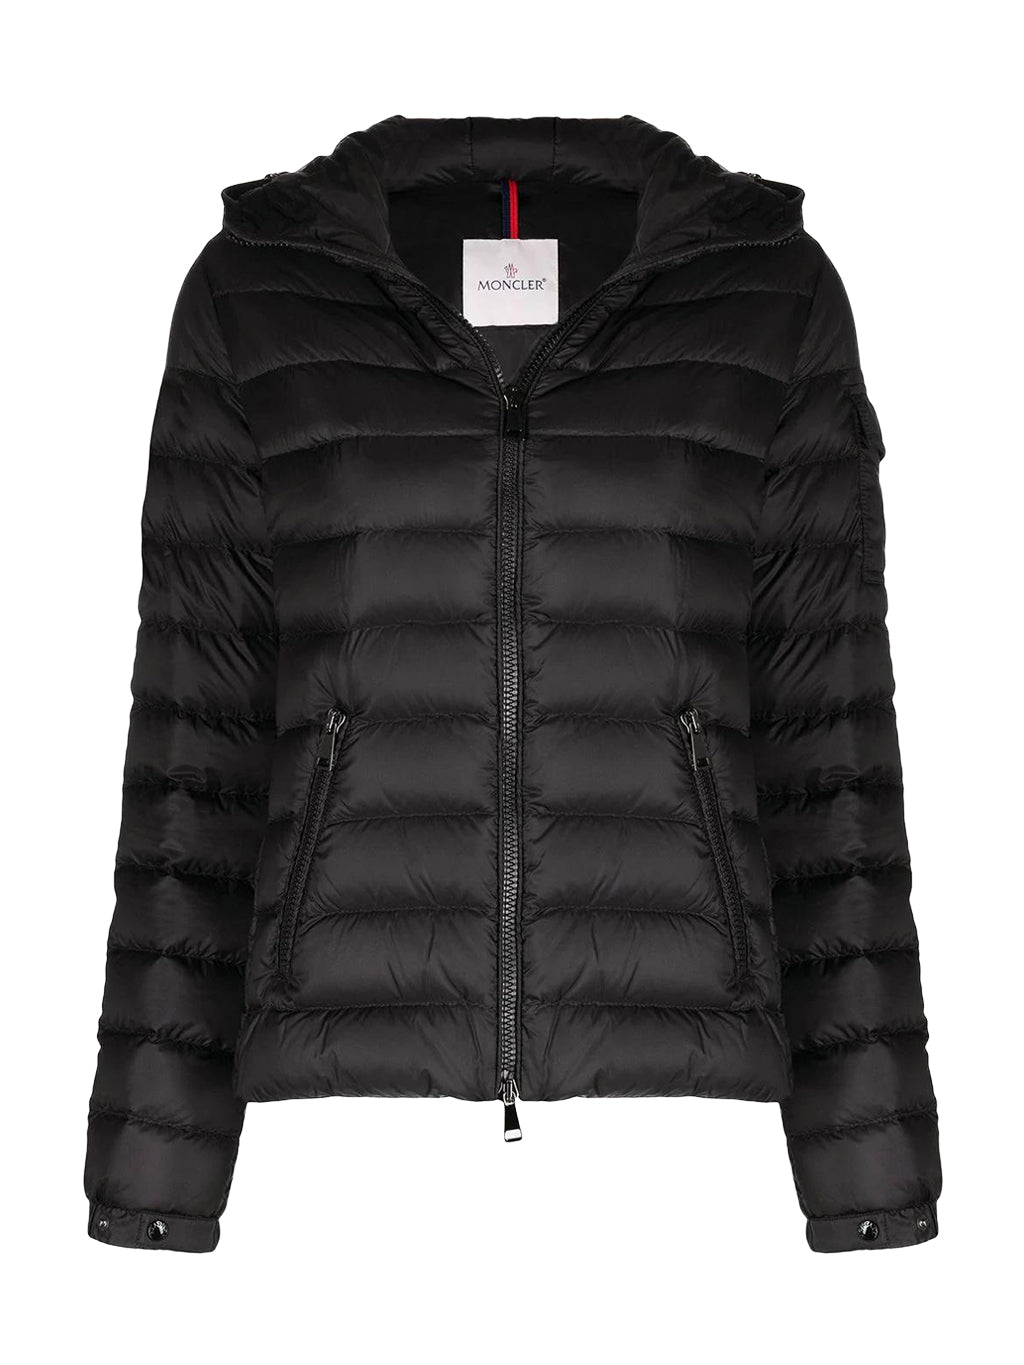 Black Bles Giubbotto Down Puffer Jacket